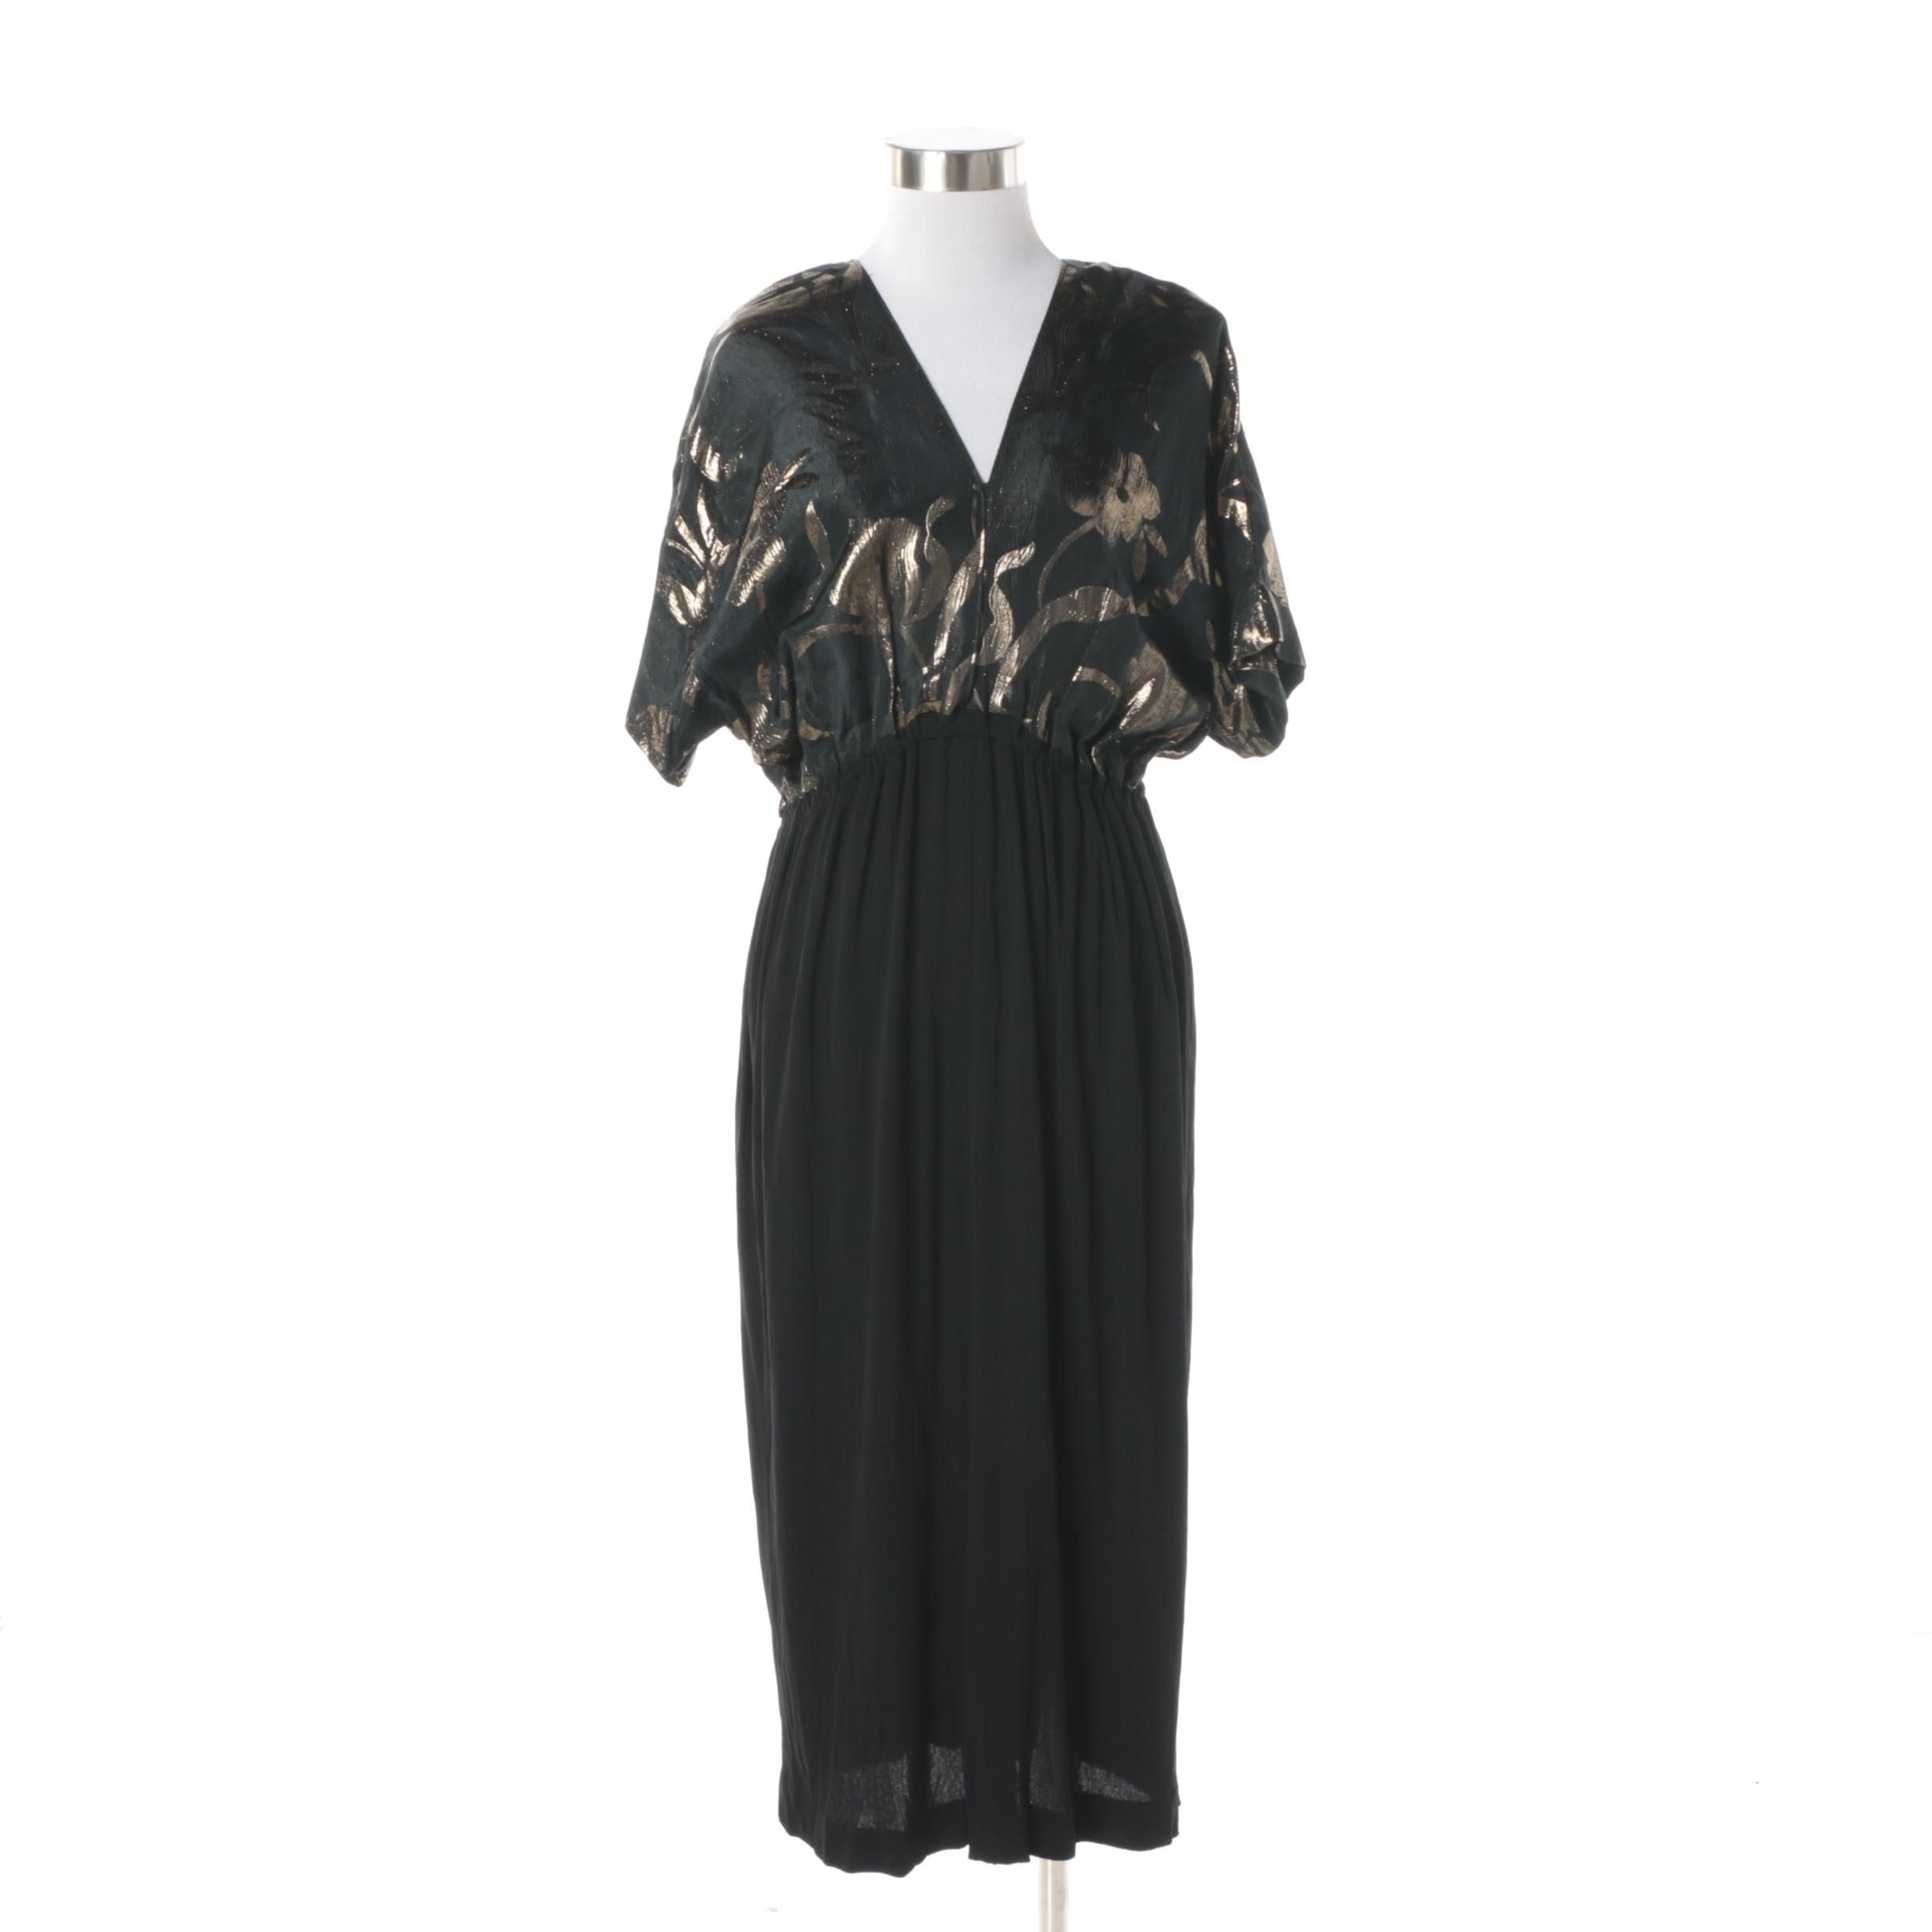 Women's Vintage Anko Black and Gold Metallic Cocktail Dress